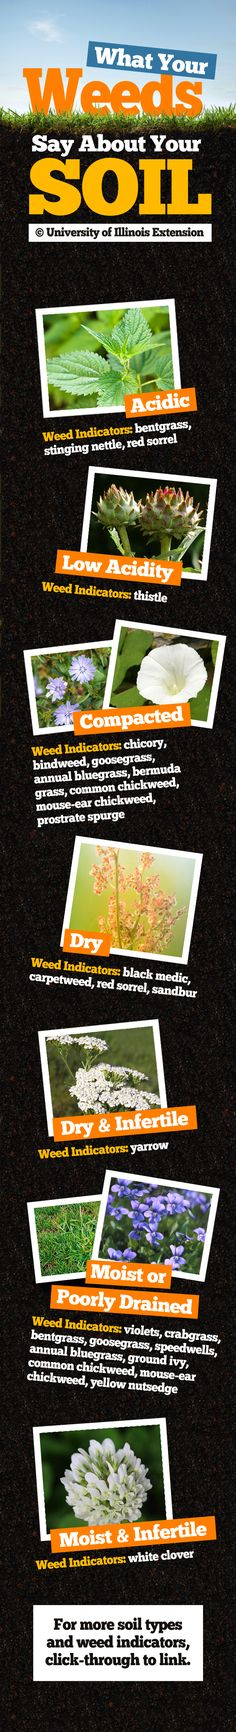 What Your Weeds Say About Your Soil